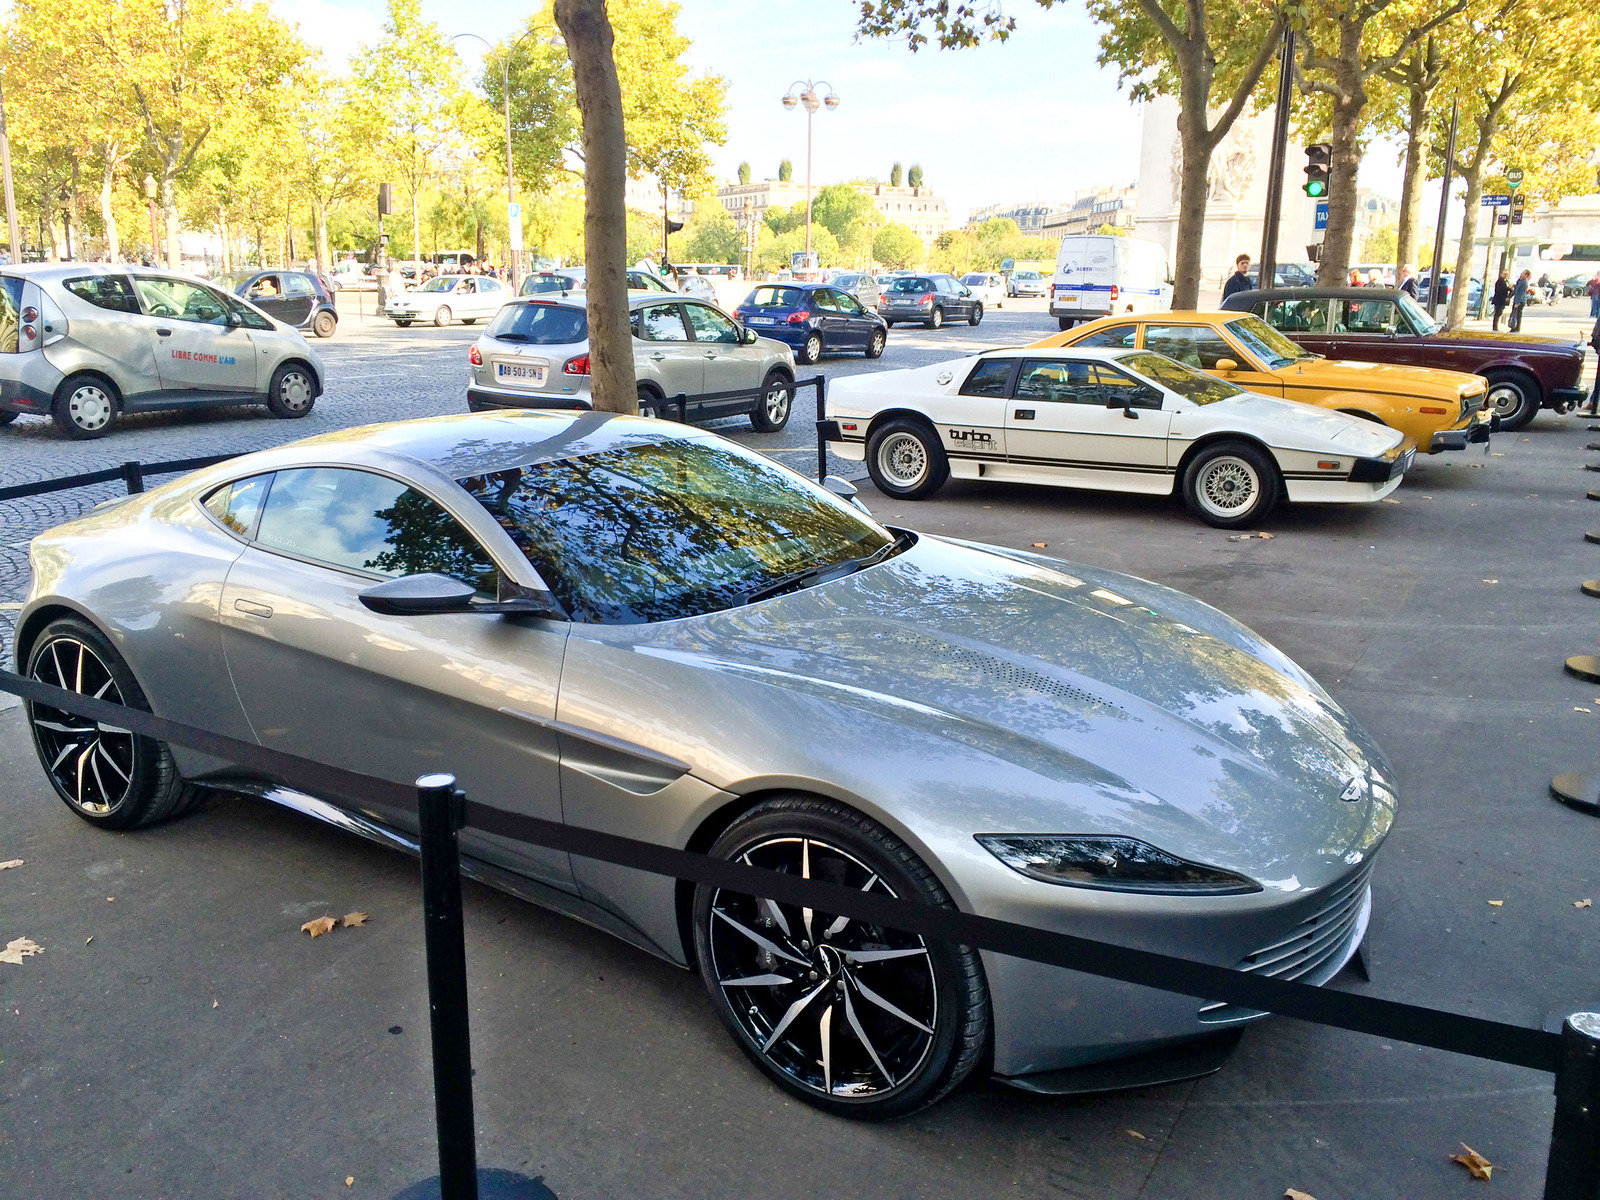 2015 aston martin db10 picture 650701 car review top speed. Black Bedroom Furniture Sets. Home Design Ideas